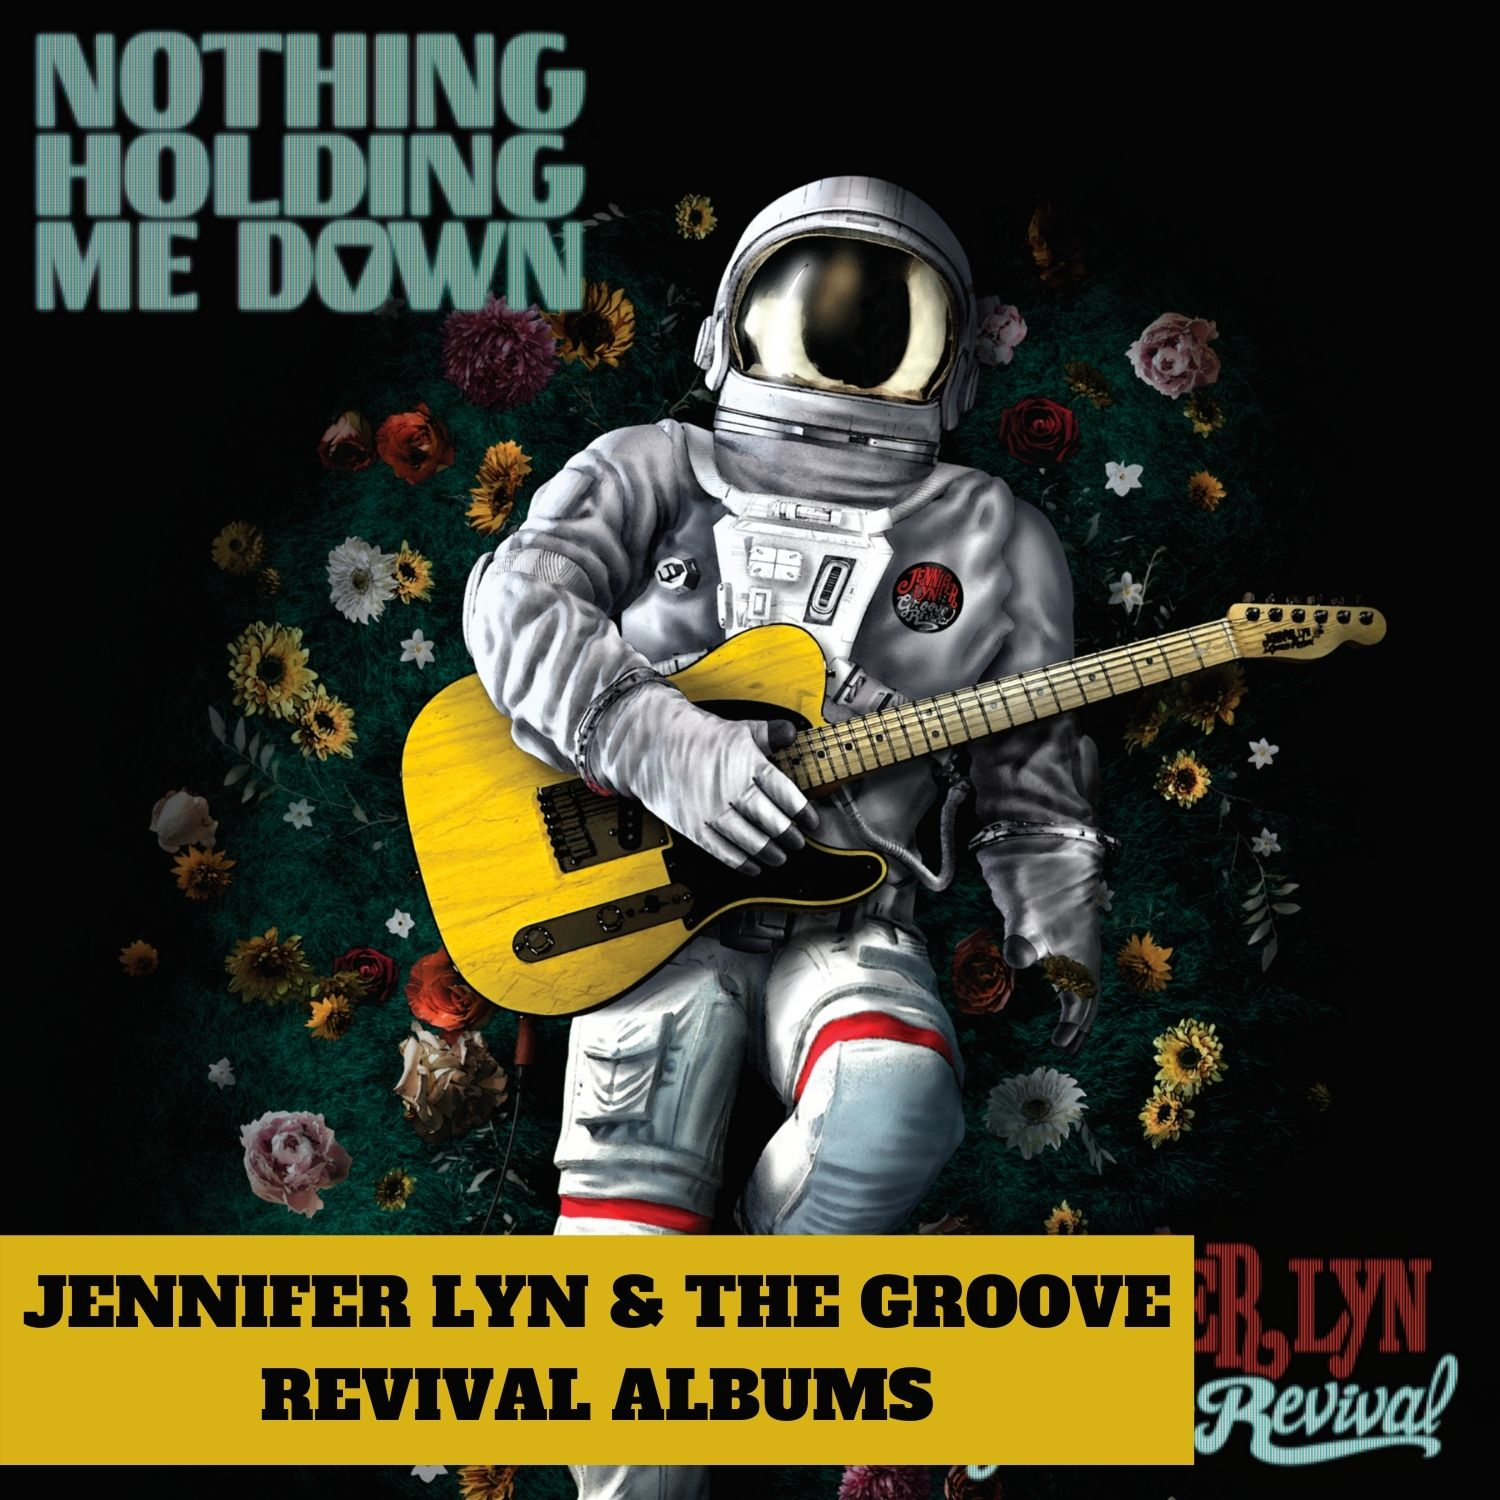 Jennifer Lyn & The Groove Revival Albums